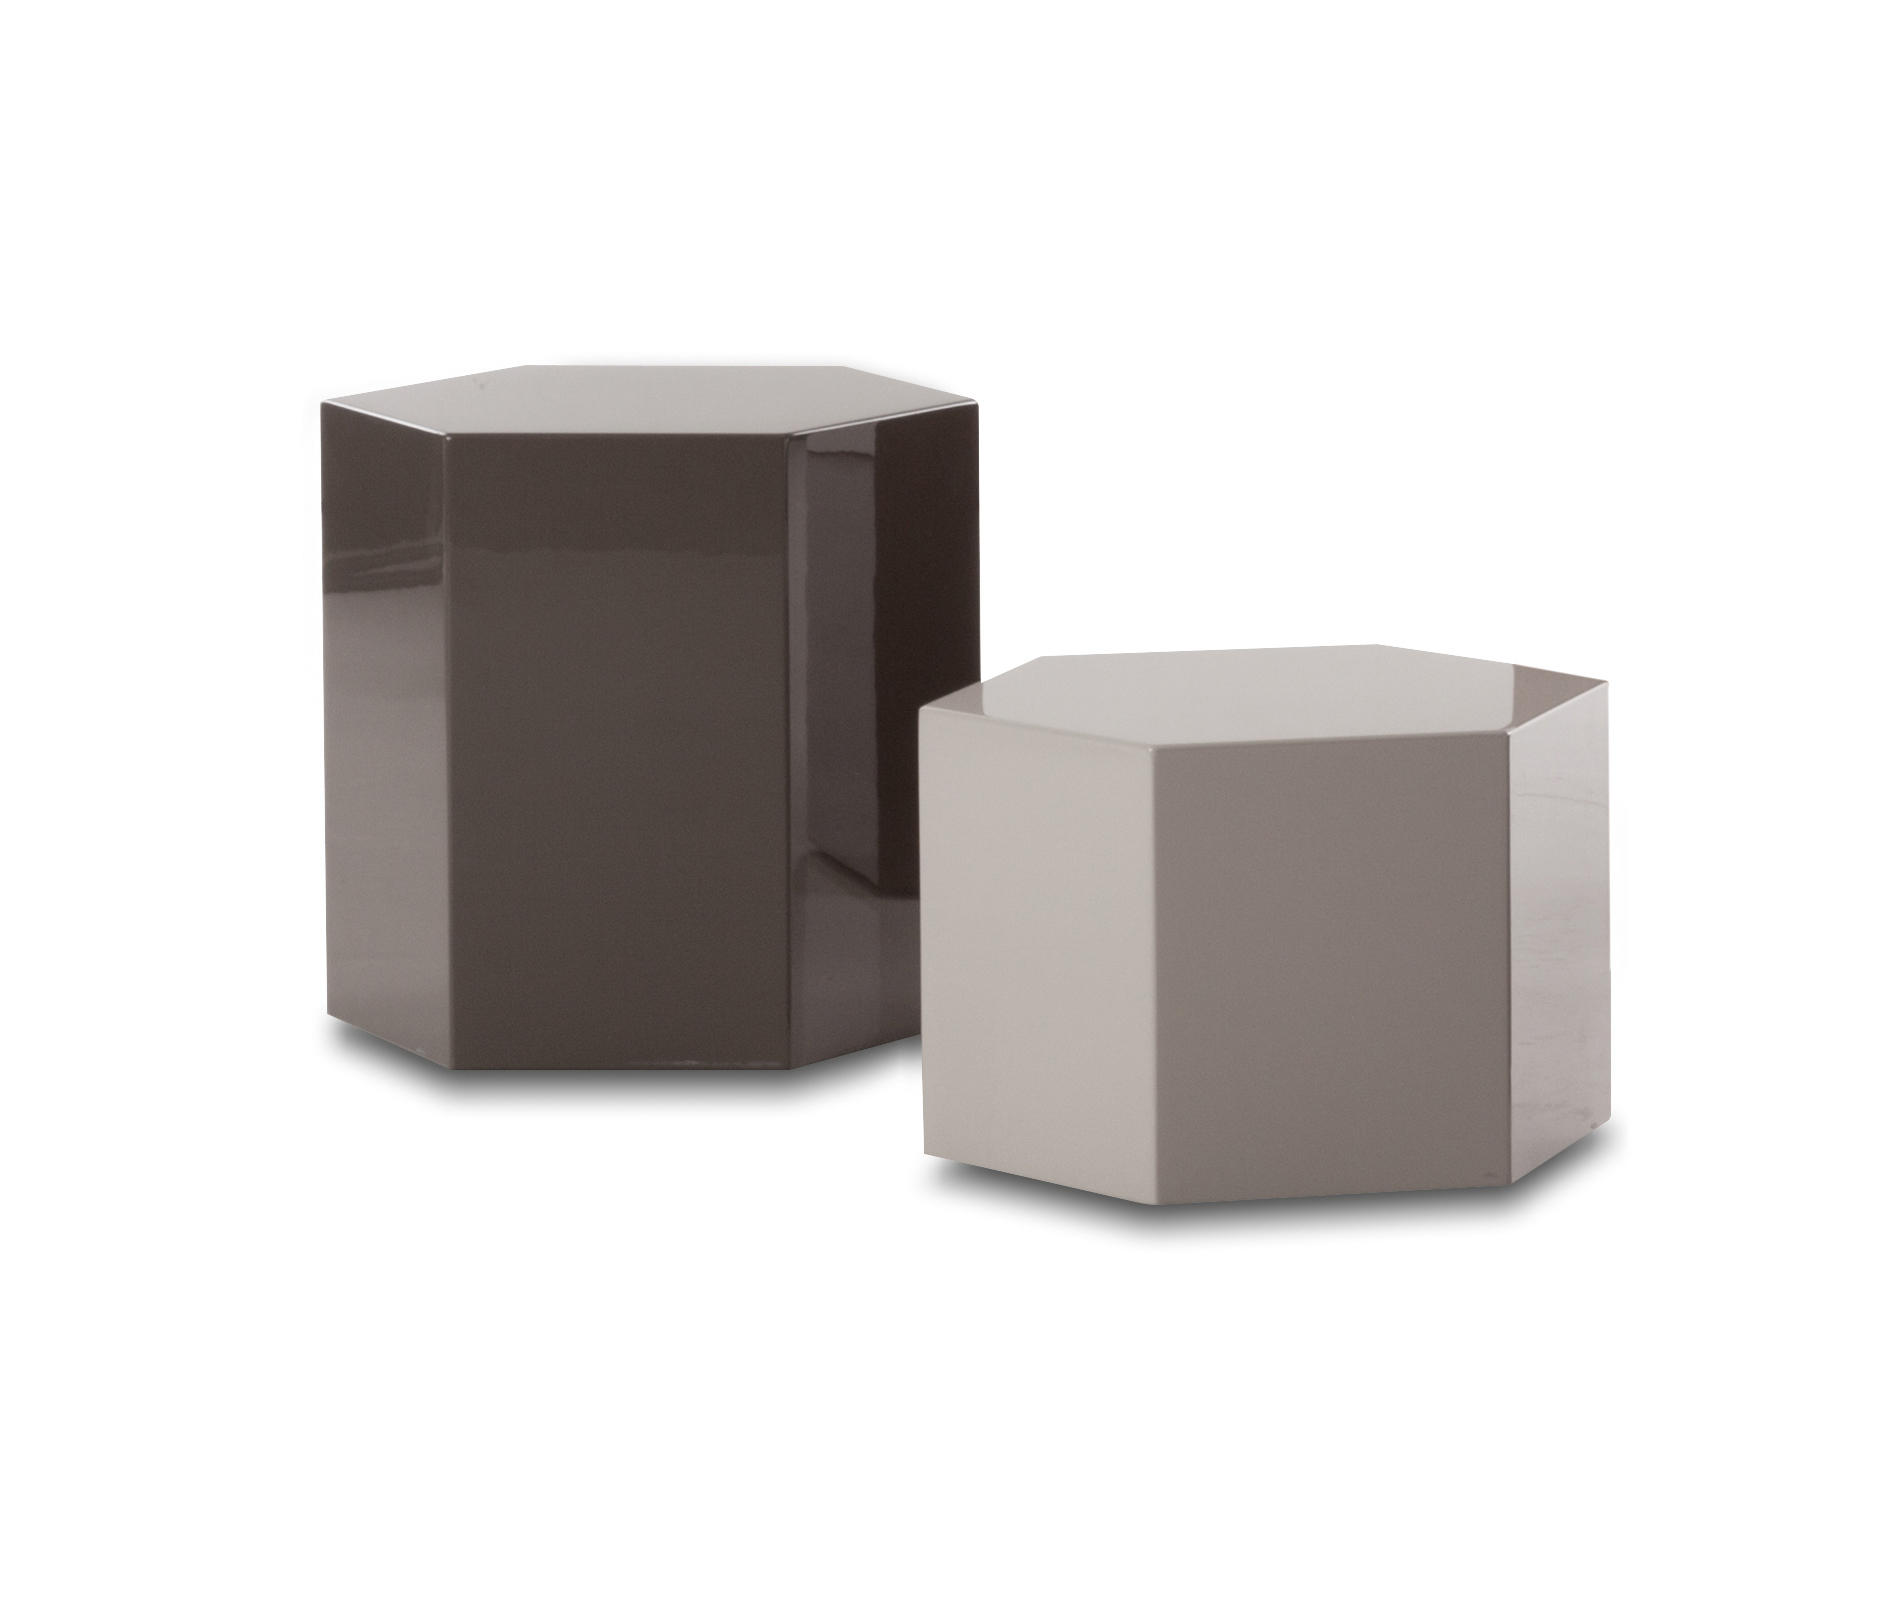 AERON OUTDOOR ACCENT TABLES Side tables from Minotti